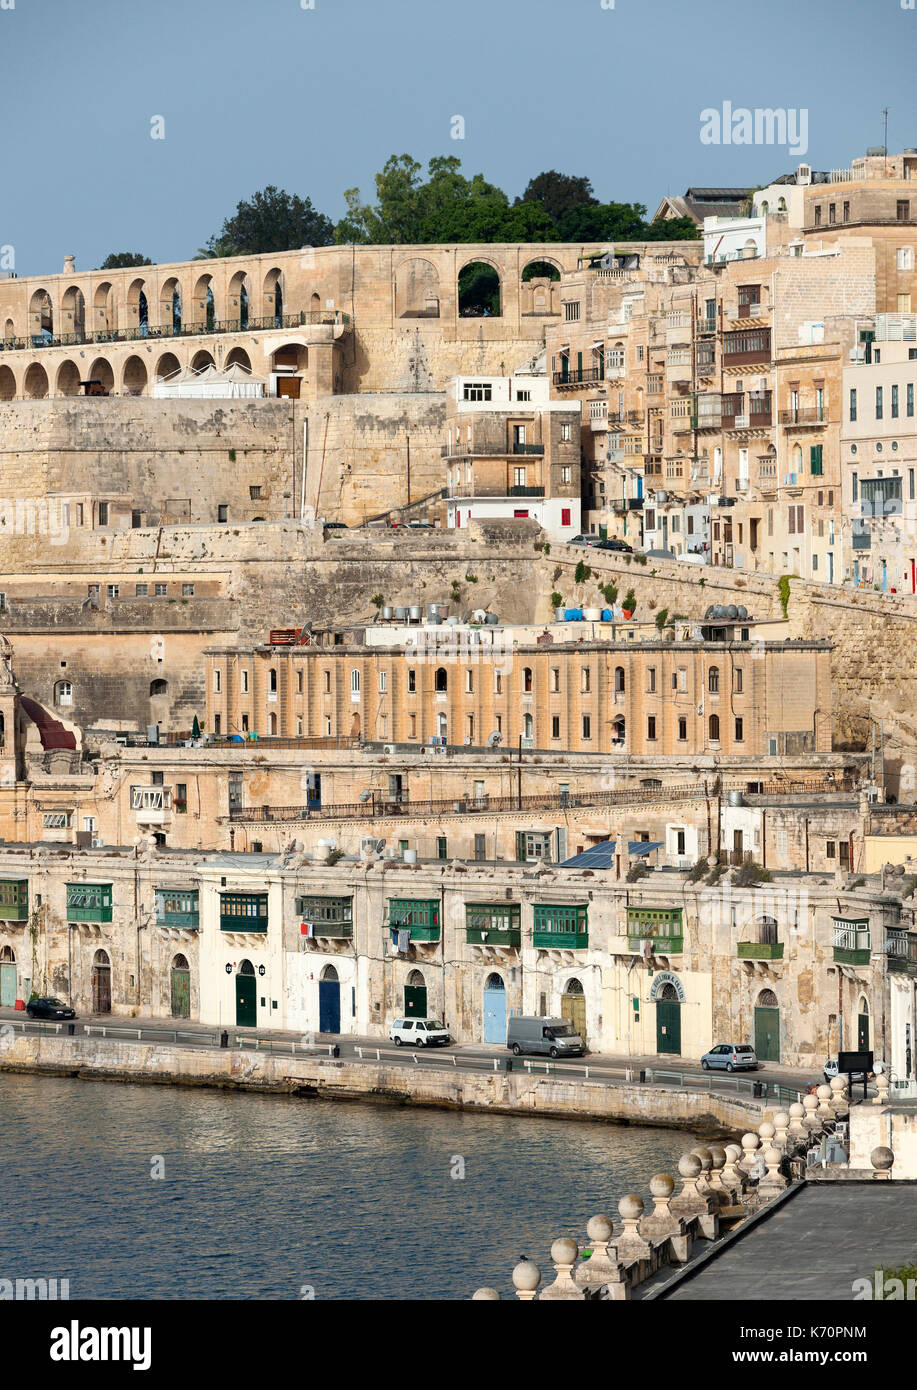 The old town of Valletta, the capital of Malta. - Stock Image